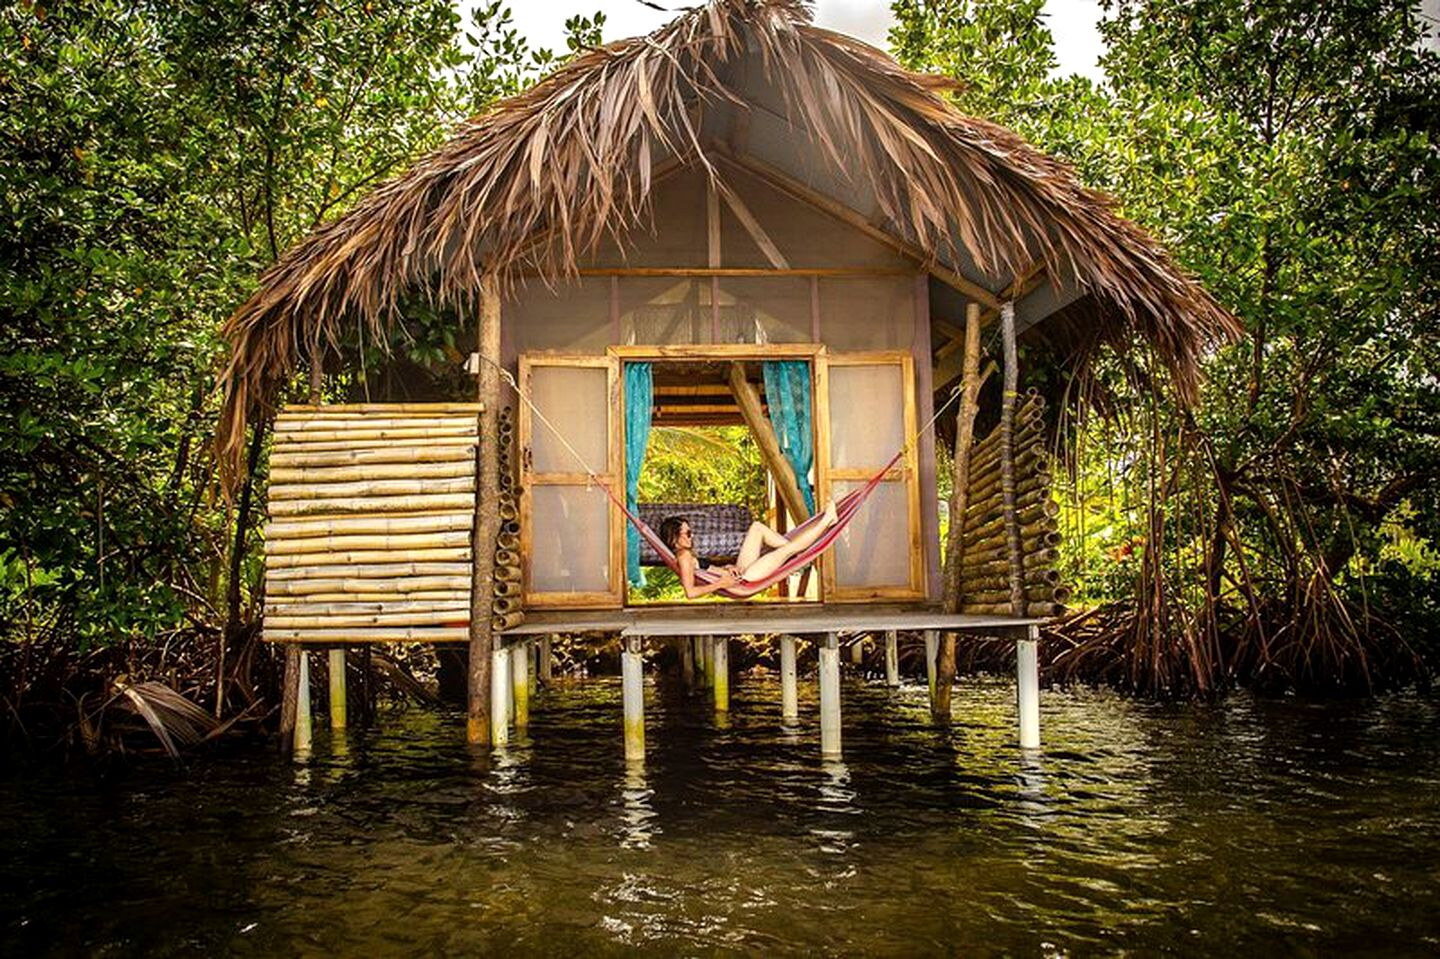 Waterfront cabin rental ideal for glamping in Panama